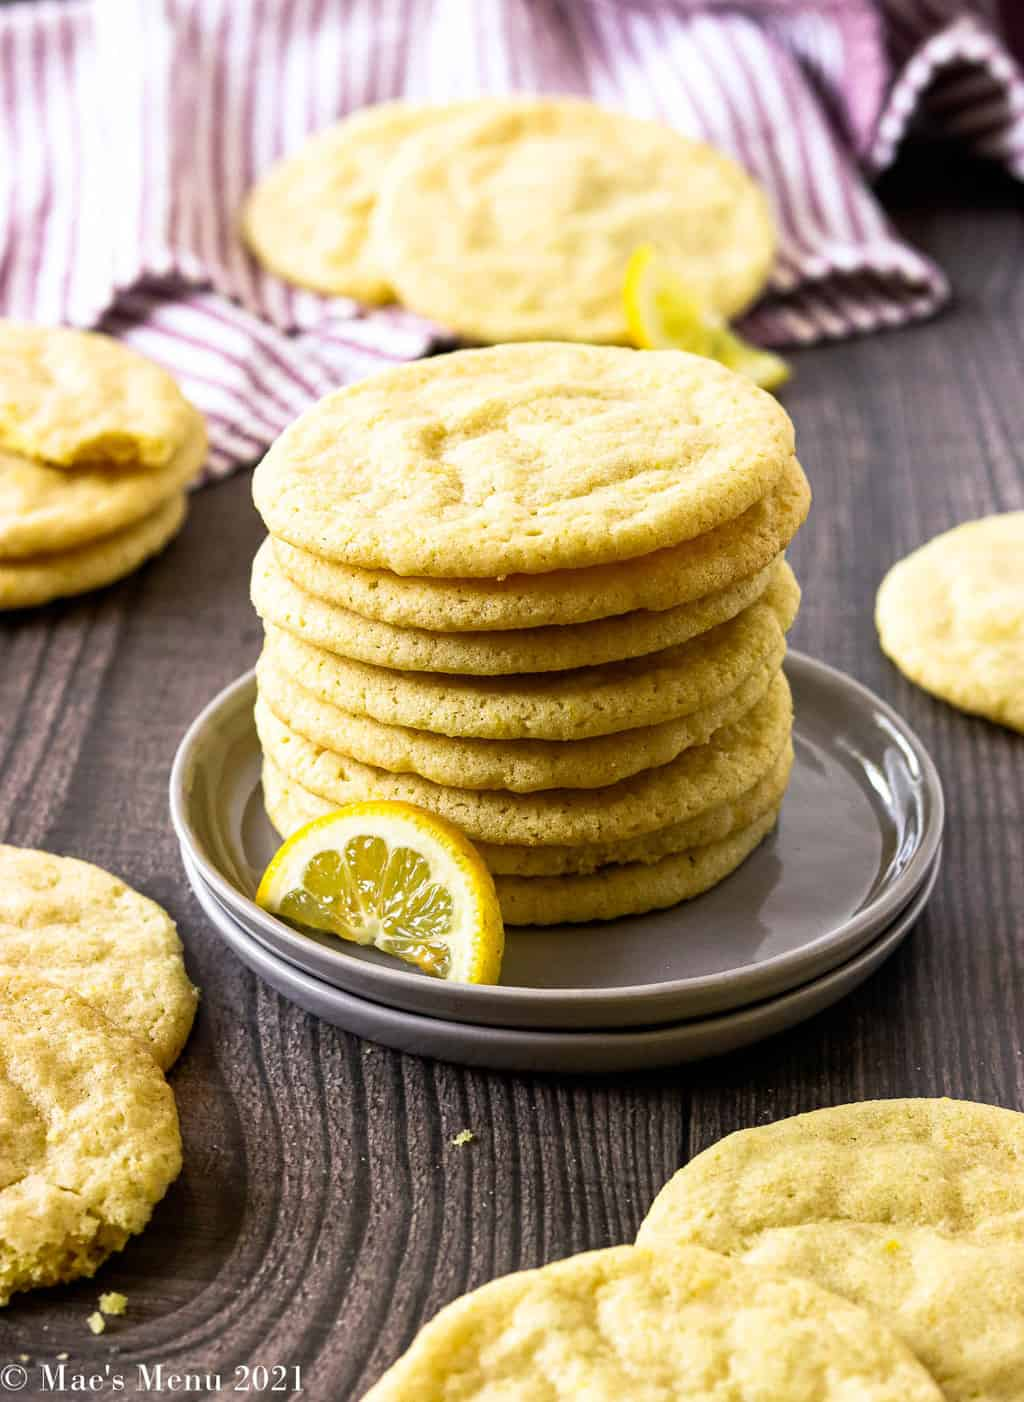 A stack of lemon sugar cookies on a grey plate with other sugar cookies all around